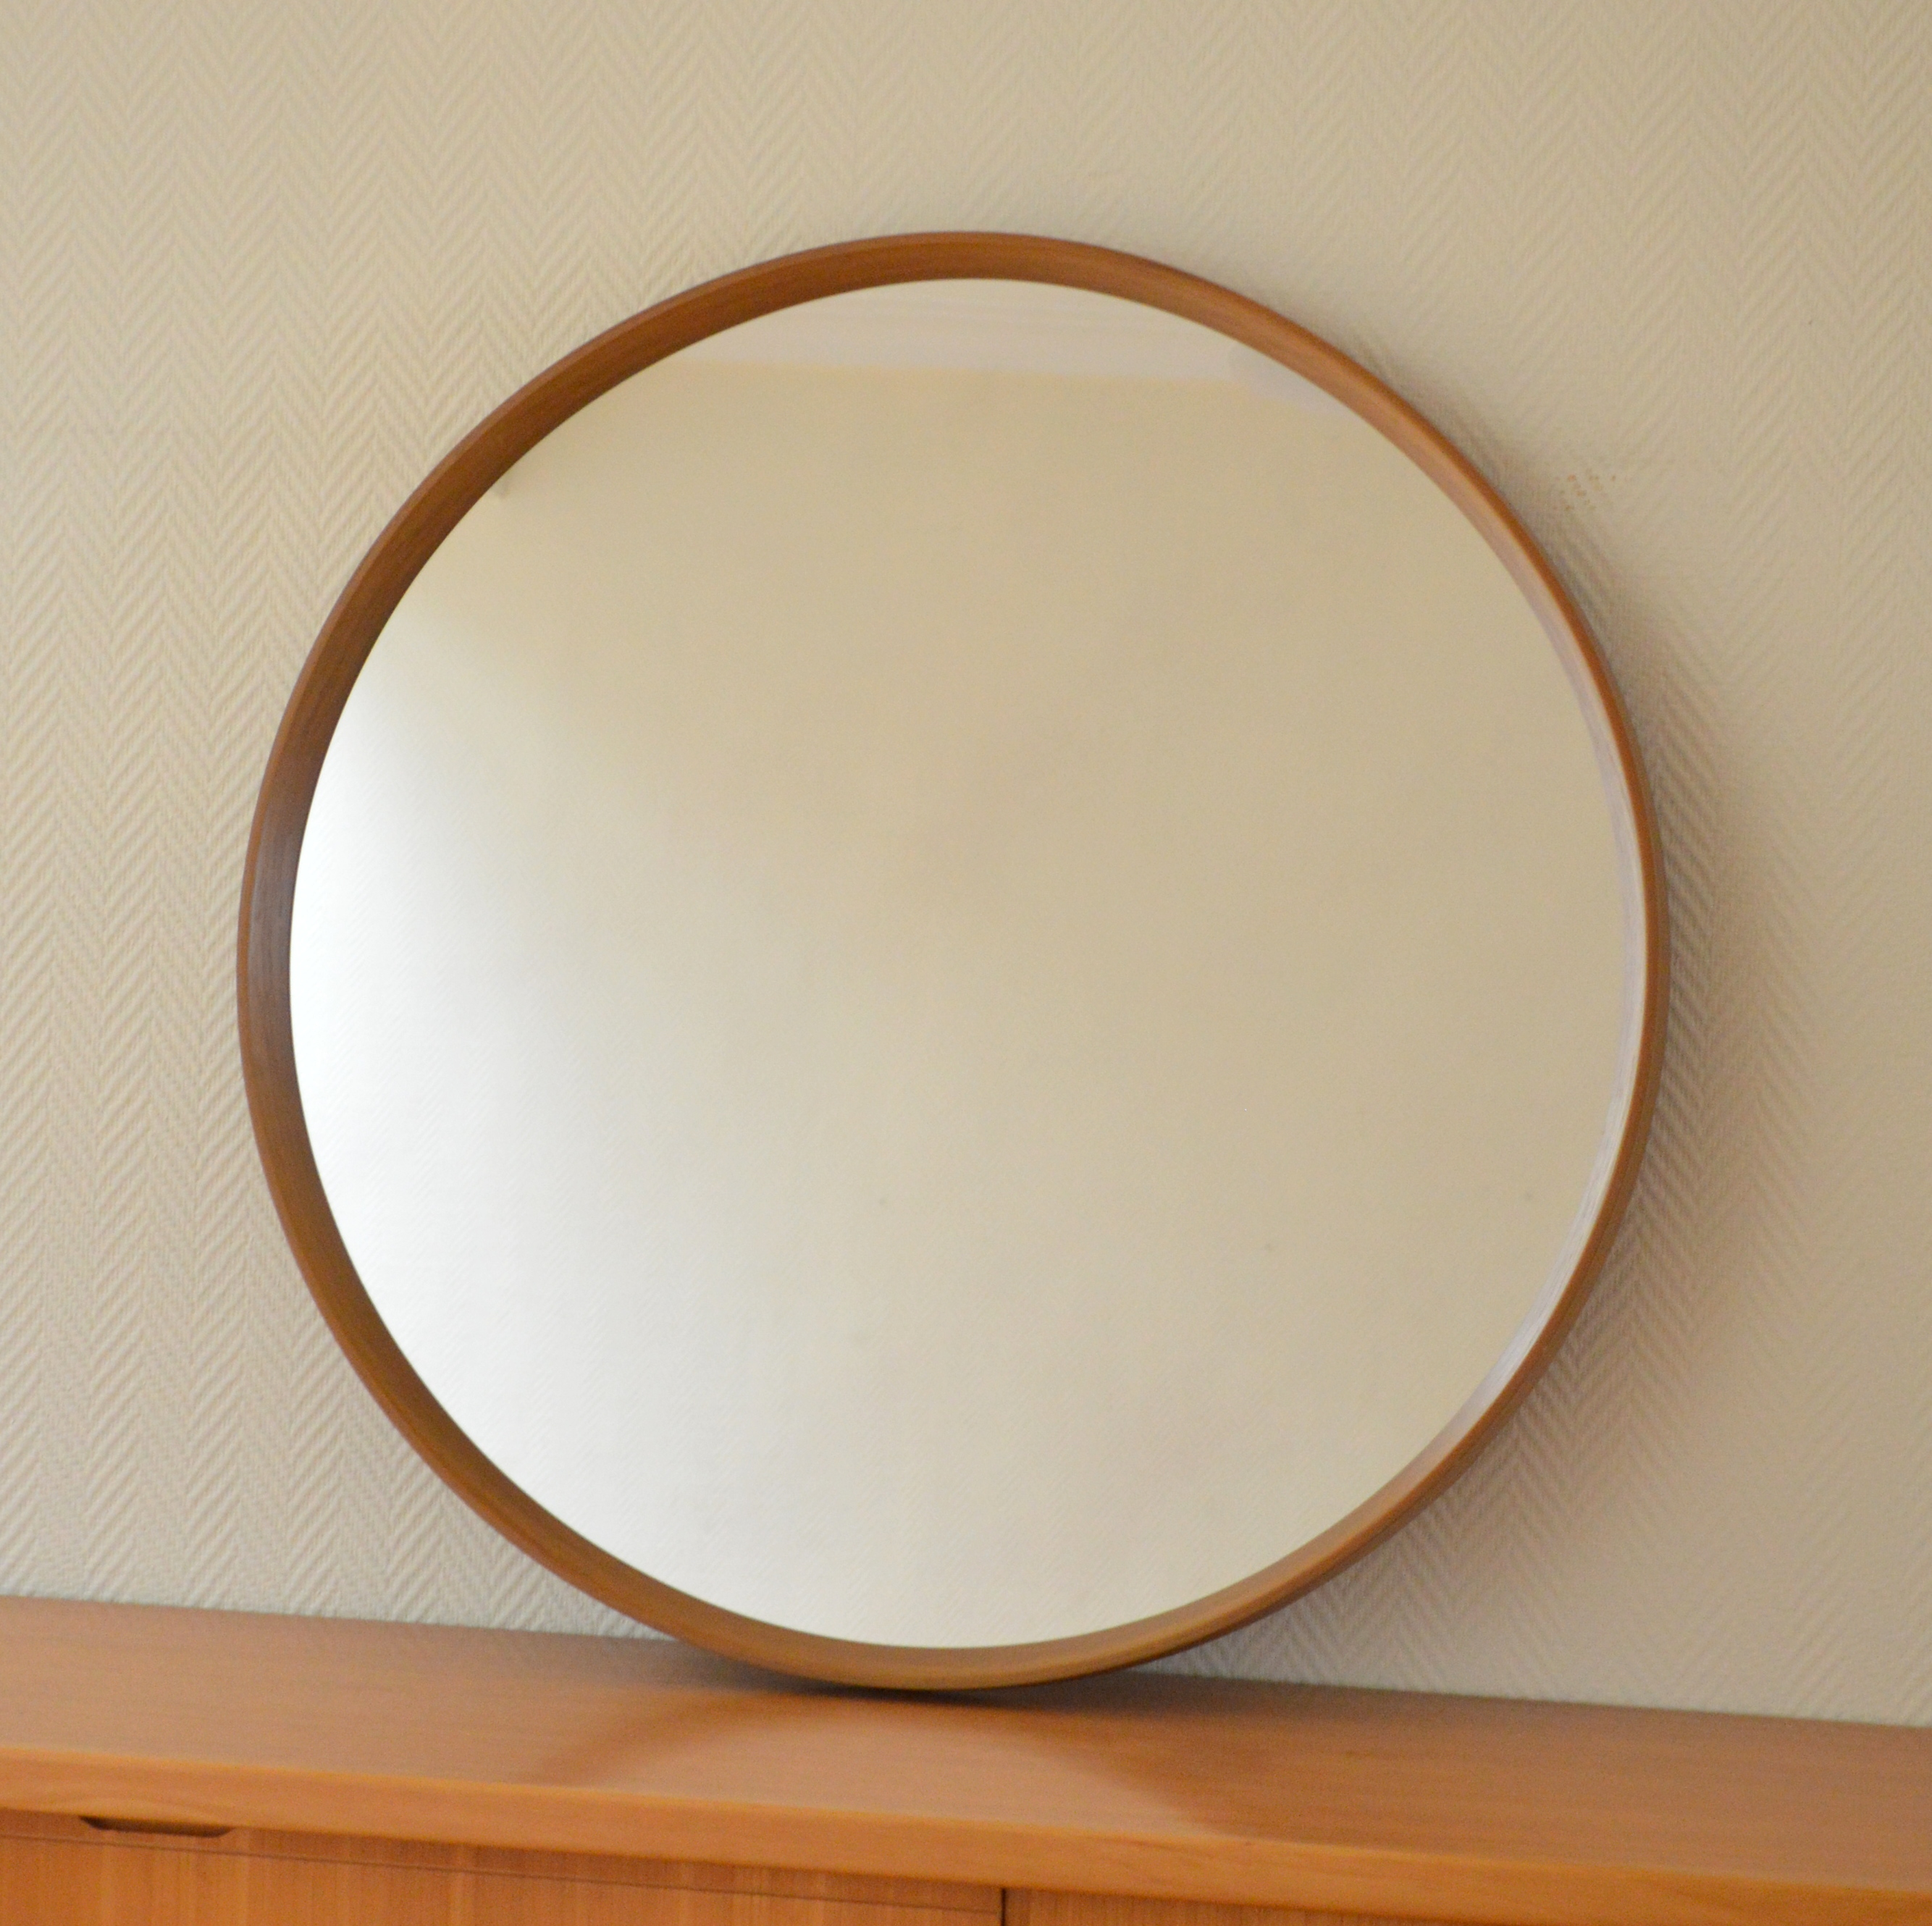 Grand miroir rond vintage for Miroir rond design